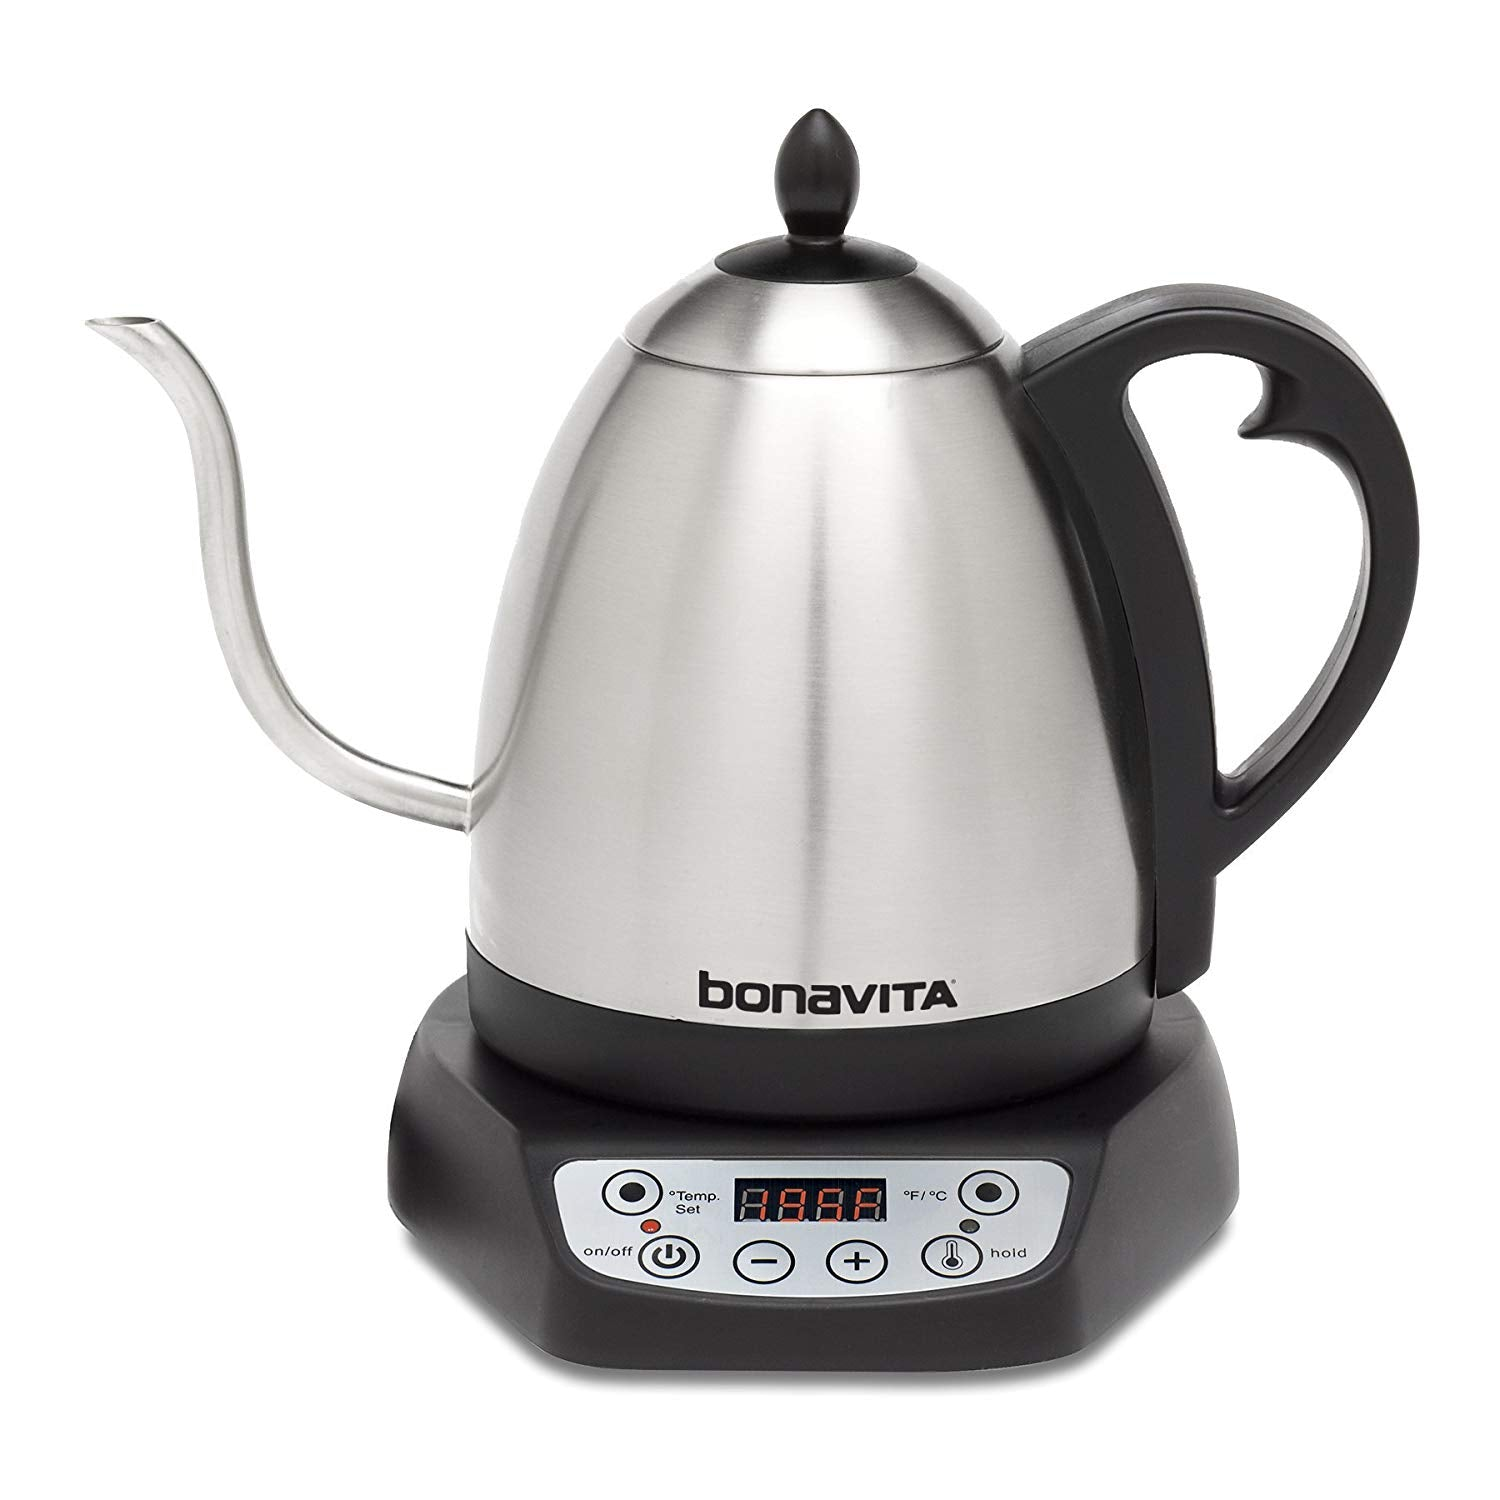 Bonavita 1.0L Variable Temperature Digital Electric Gooseneck Kettle